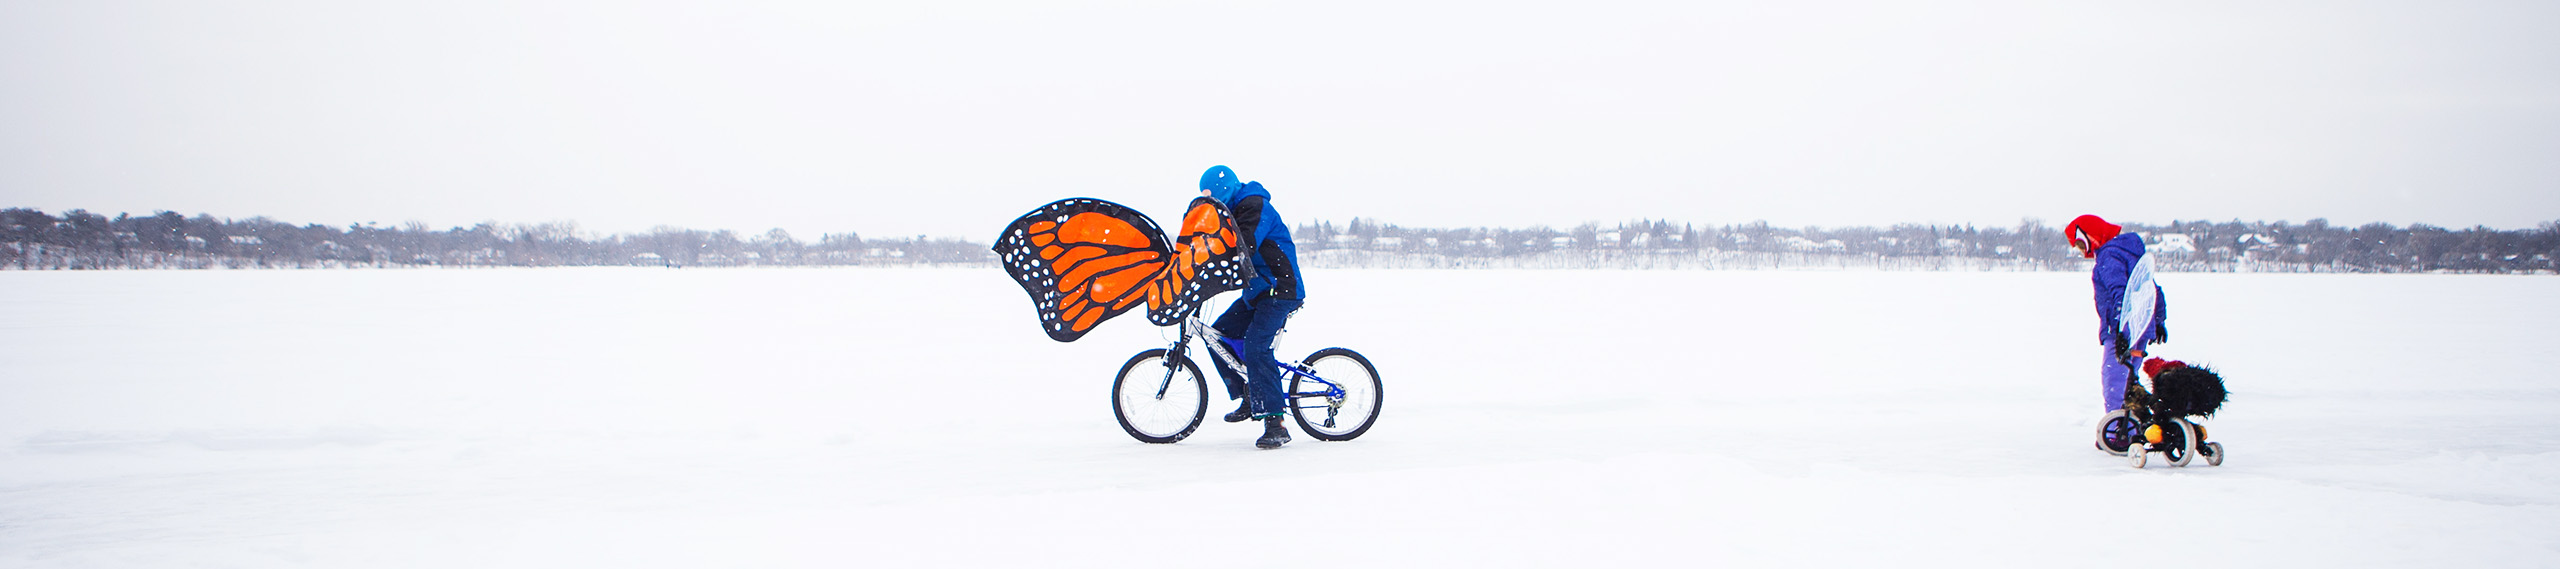 Panorama of two cyclists against a stark whiteout landscape. The first bicyclist has big monarch wings attached to their handlebars and the other wears translucent wings and drags a tiny tricycle behind them.